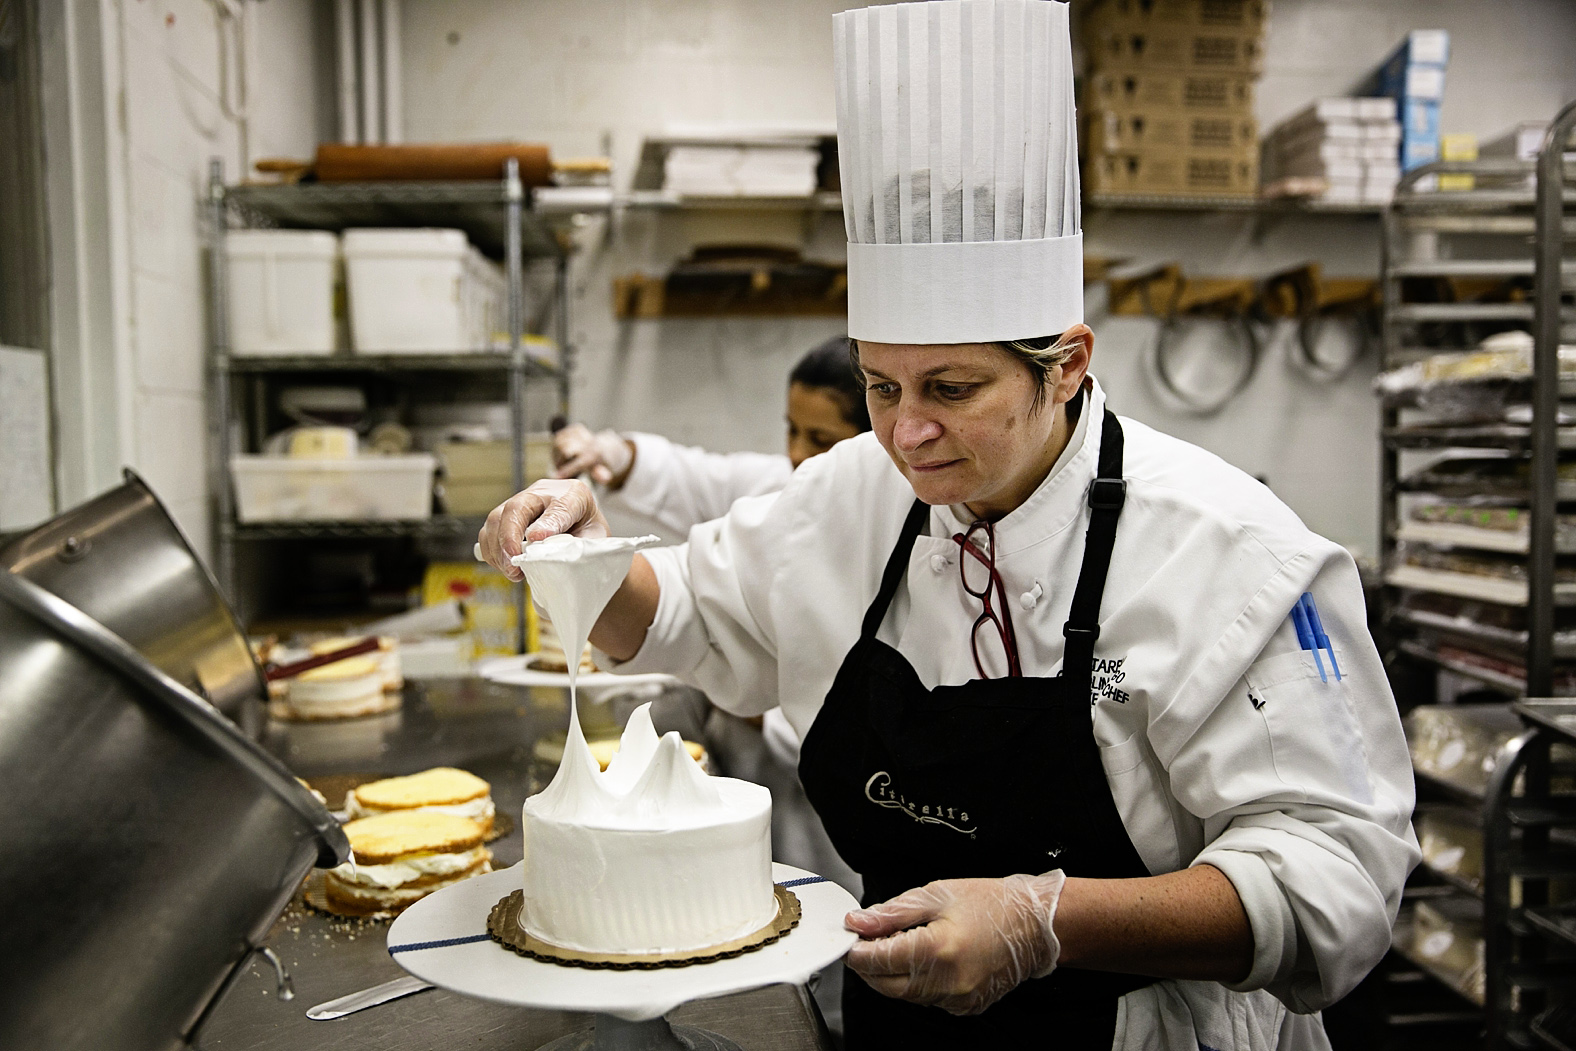 Pastry Chef for Citarella | Serendipity Magazine